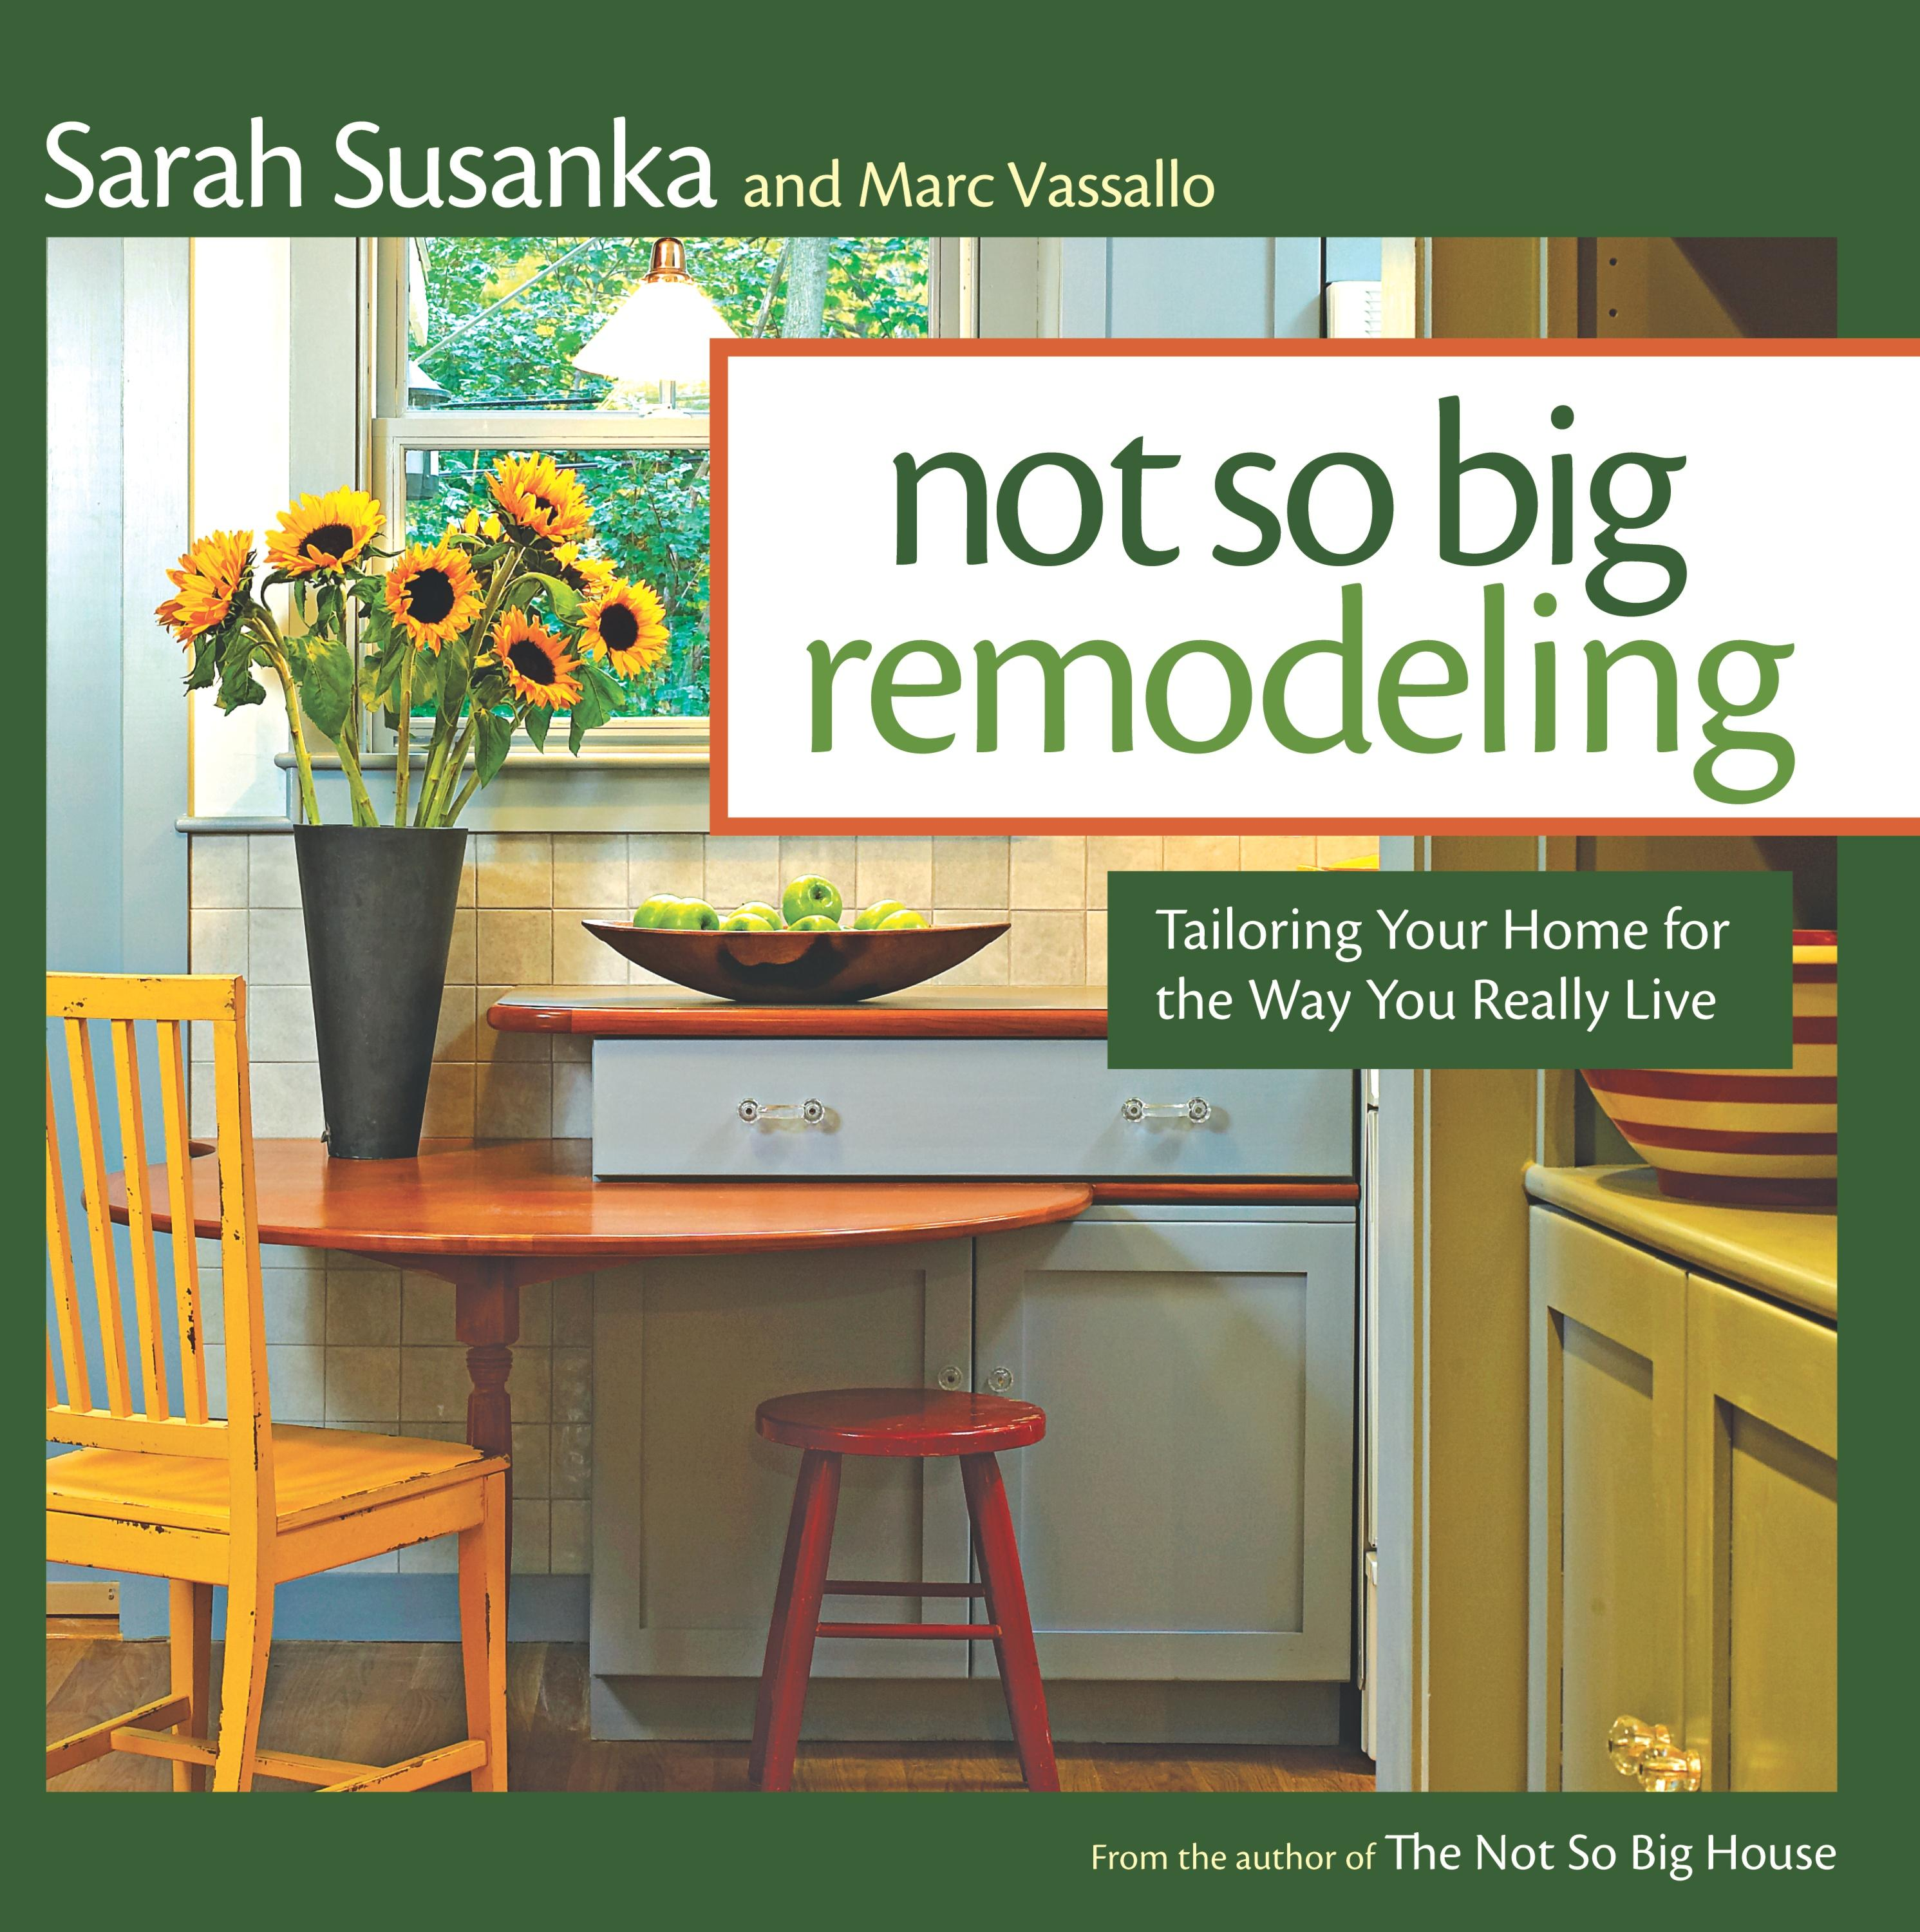 Not So Big Remodeling : Tailoring Your Home for the Way You Really Live